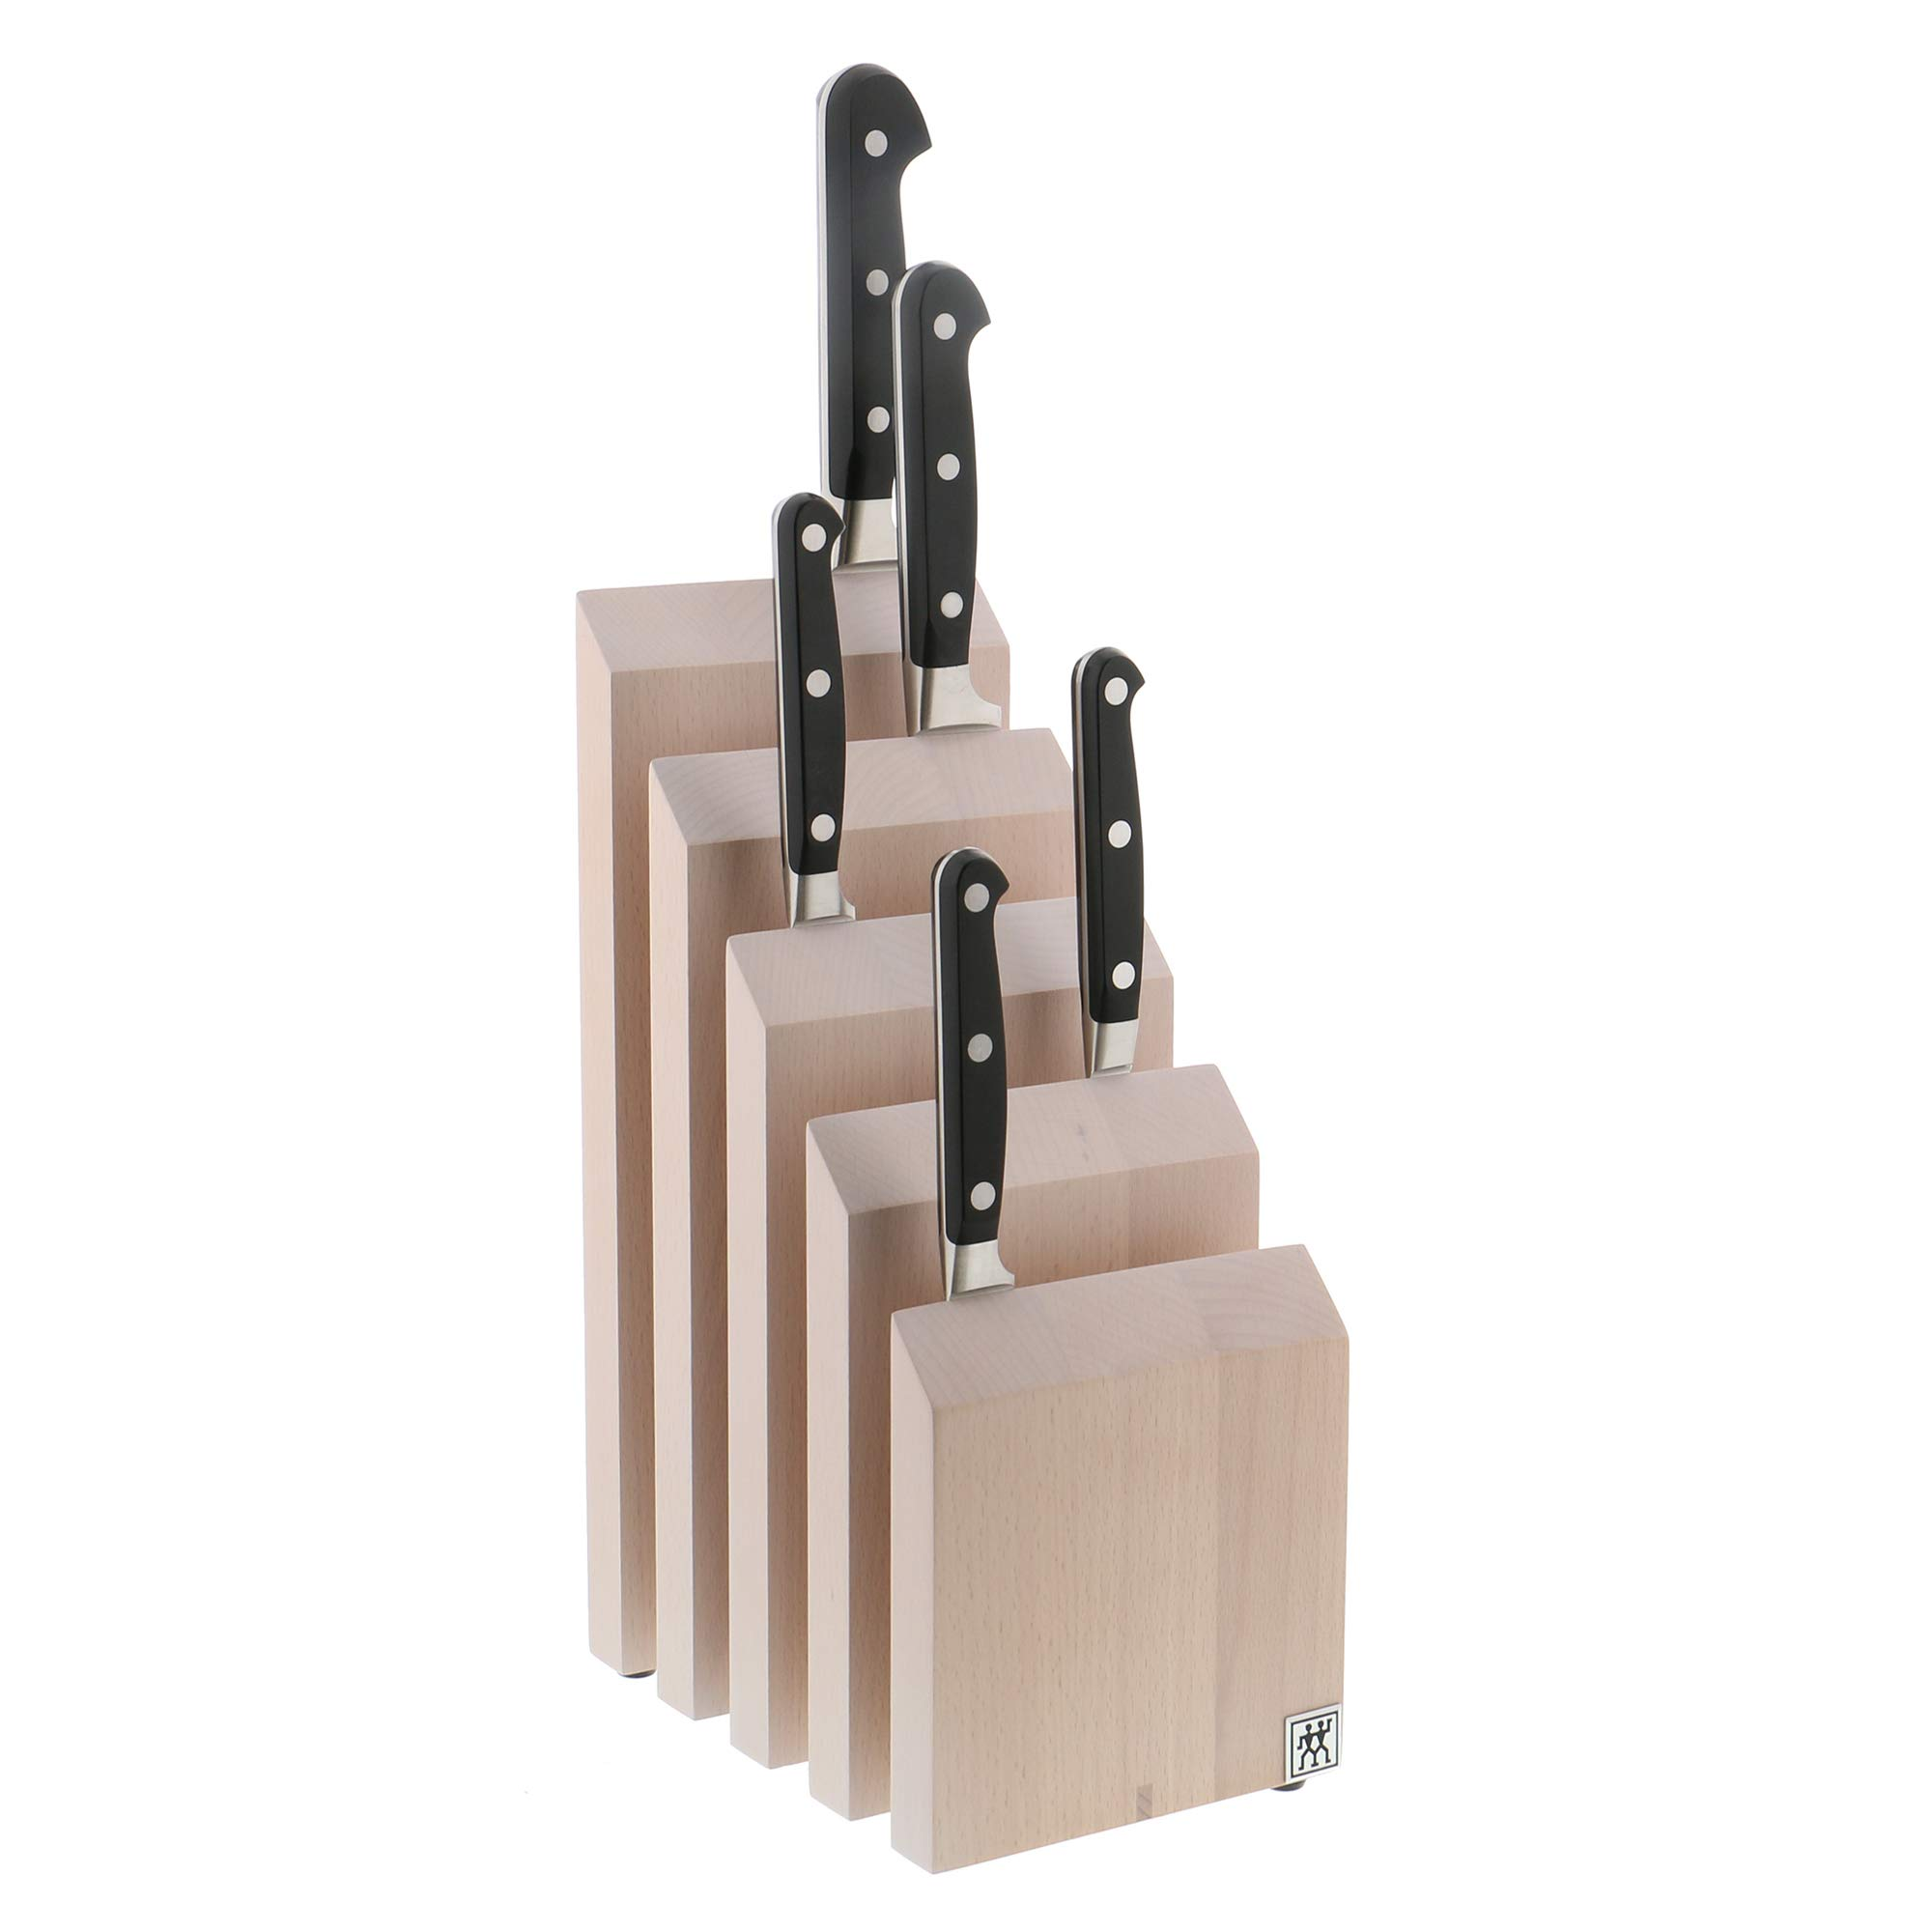 ZWILLING Italian Upright Magnetic Knife Block - White-Colored Beechwood by ZWILLING J.A. Henckels (Image #2)